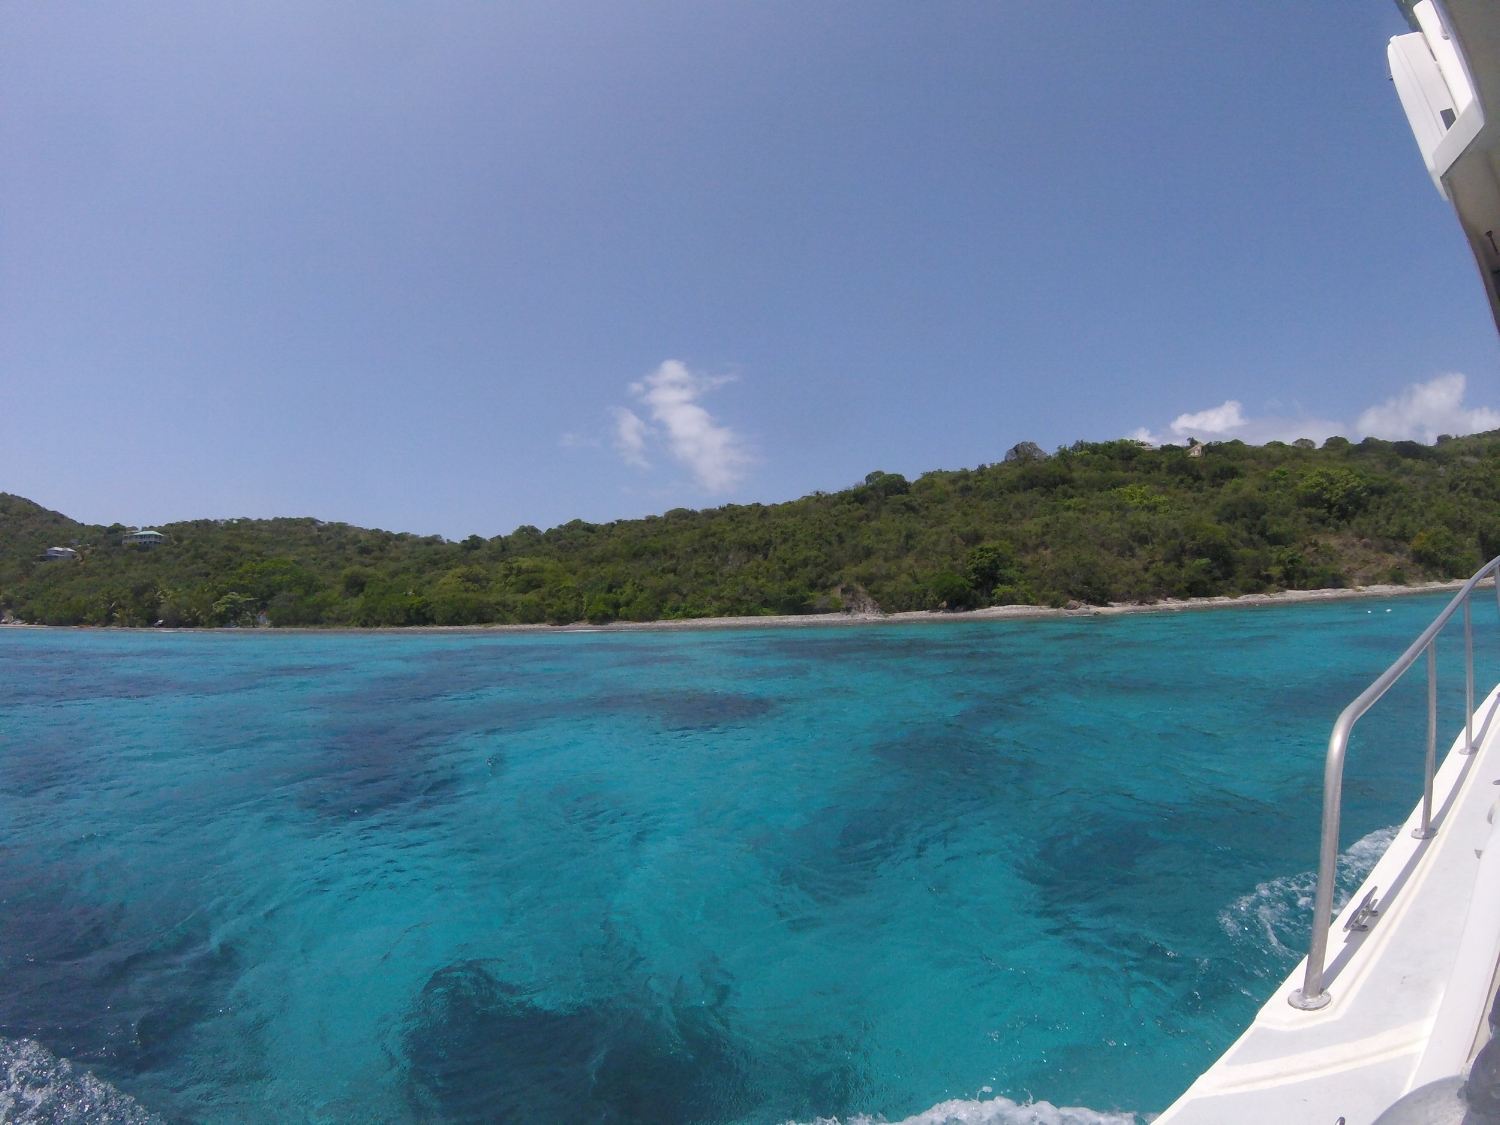 Site of our first dive, Little Saint James